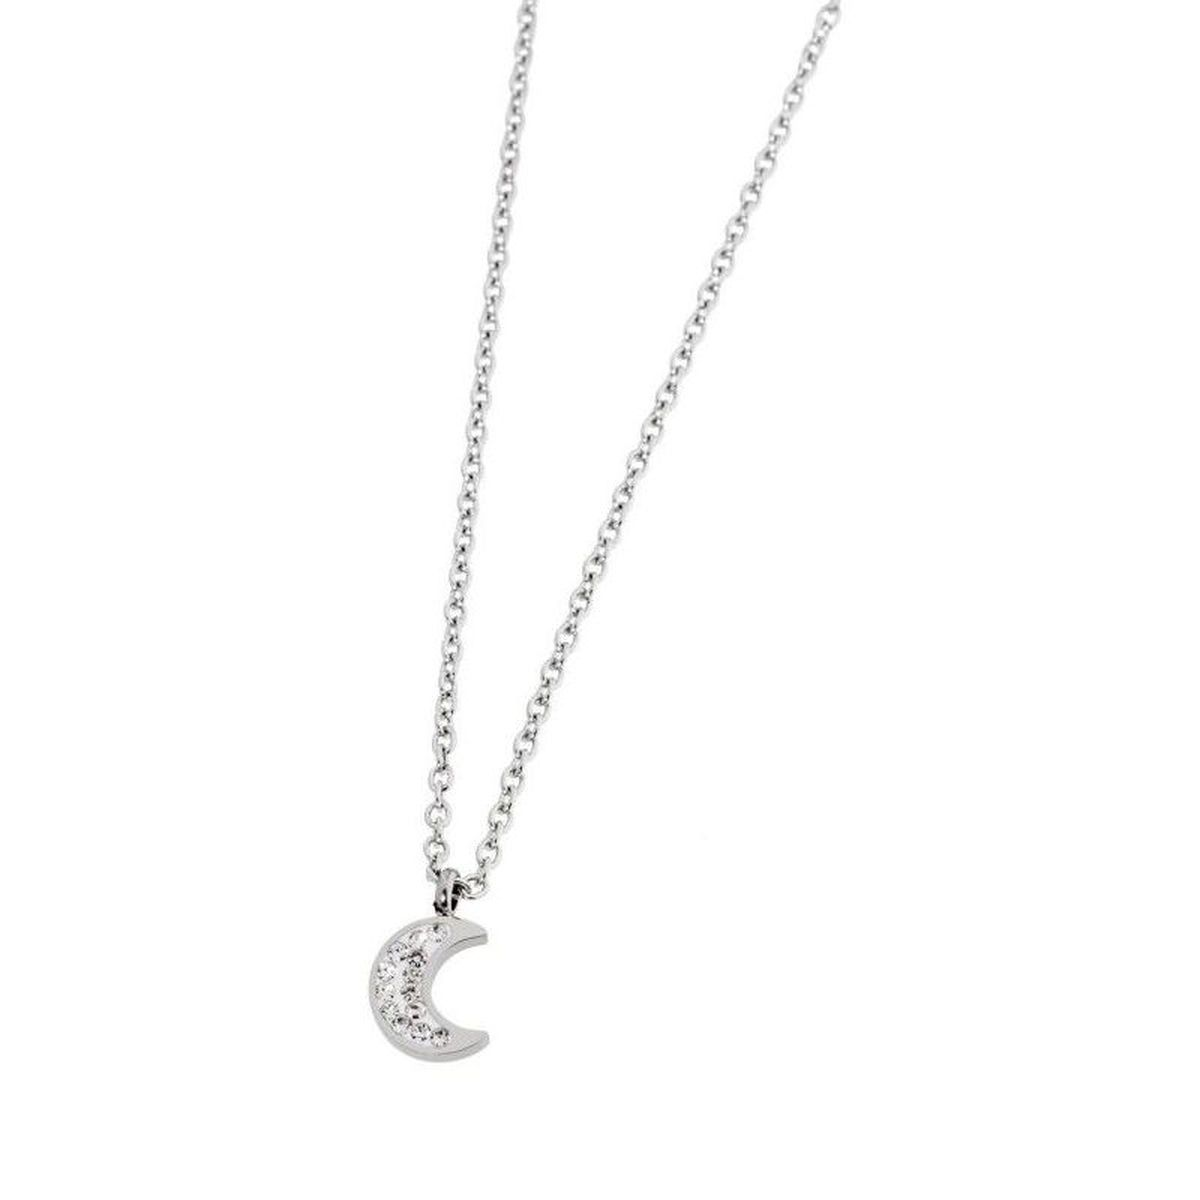 Luna necklace with rhinestones White Marlù